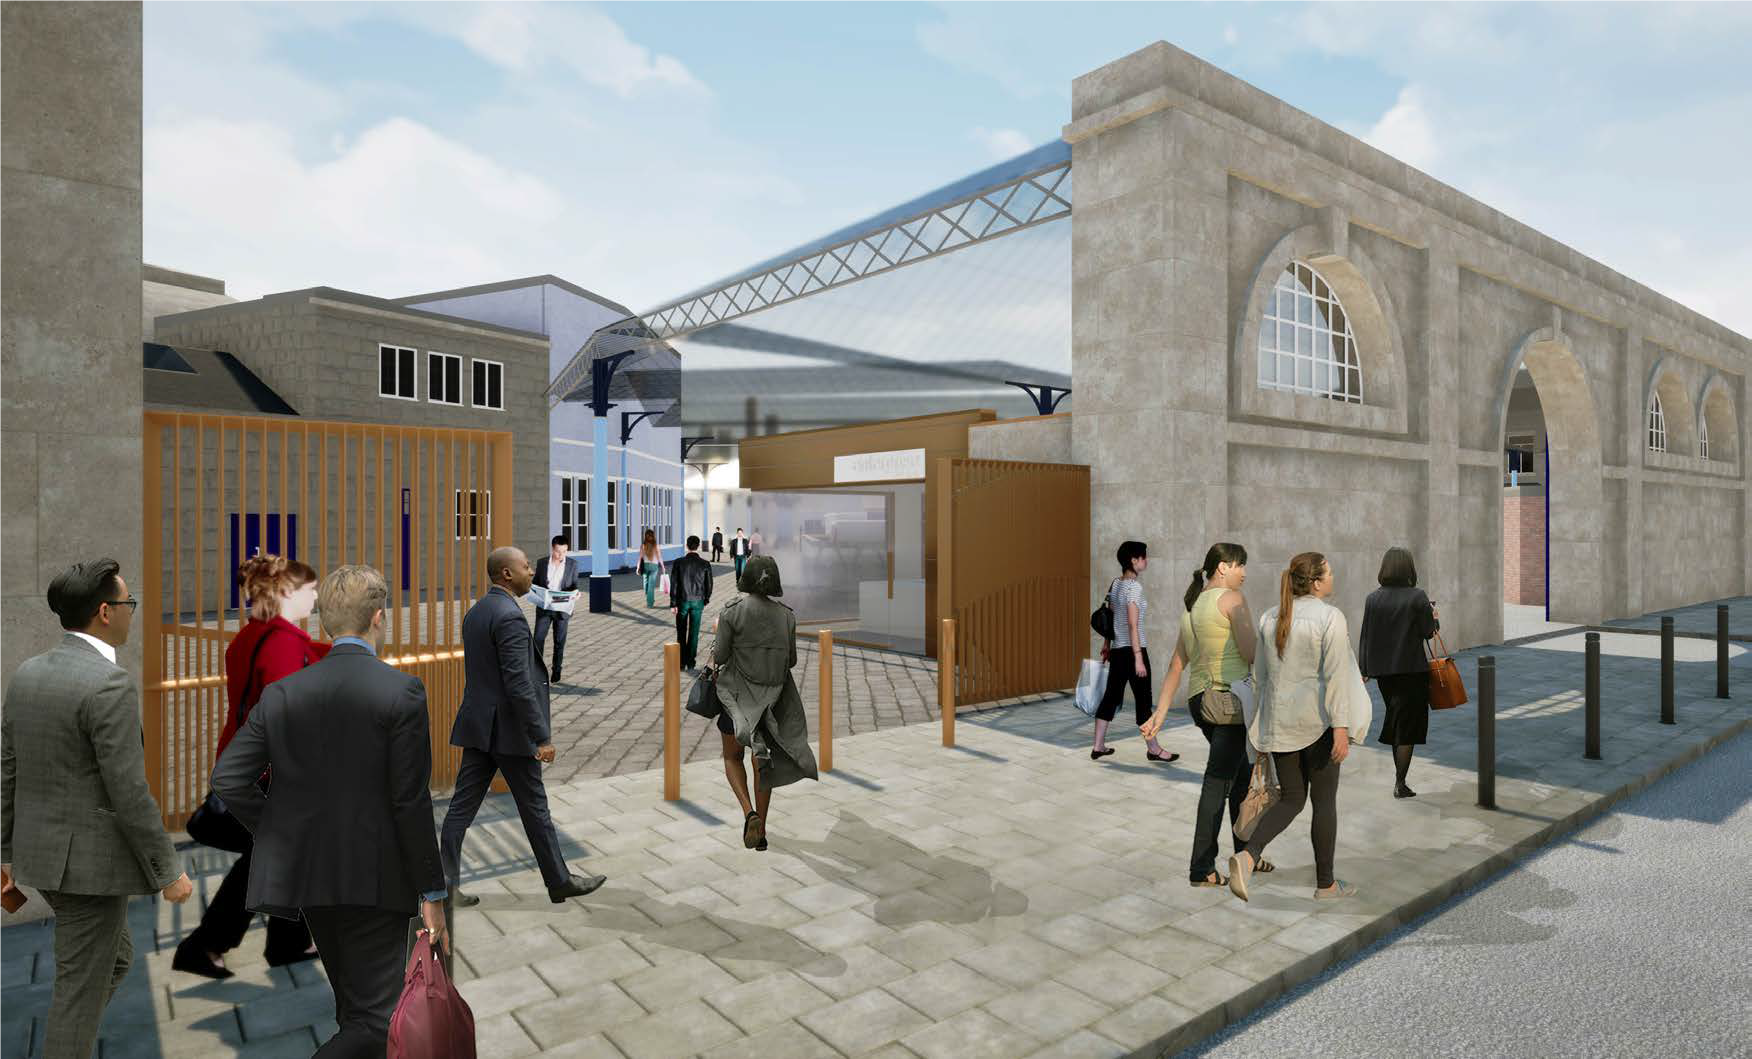 Artists impression of the new Neville Street entrance to Newcastle Central Station